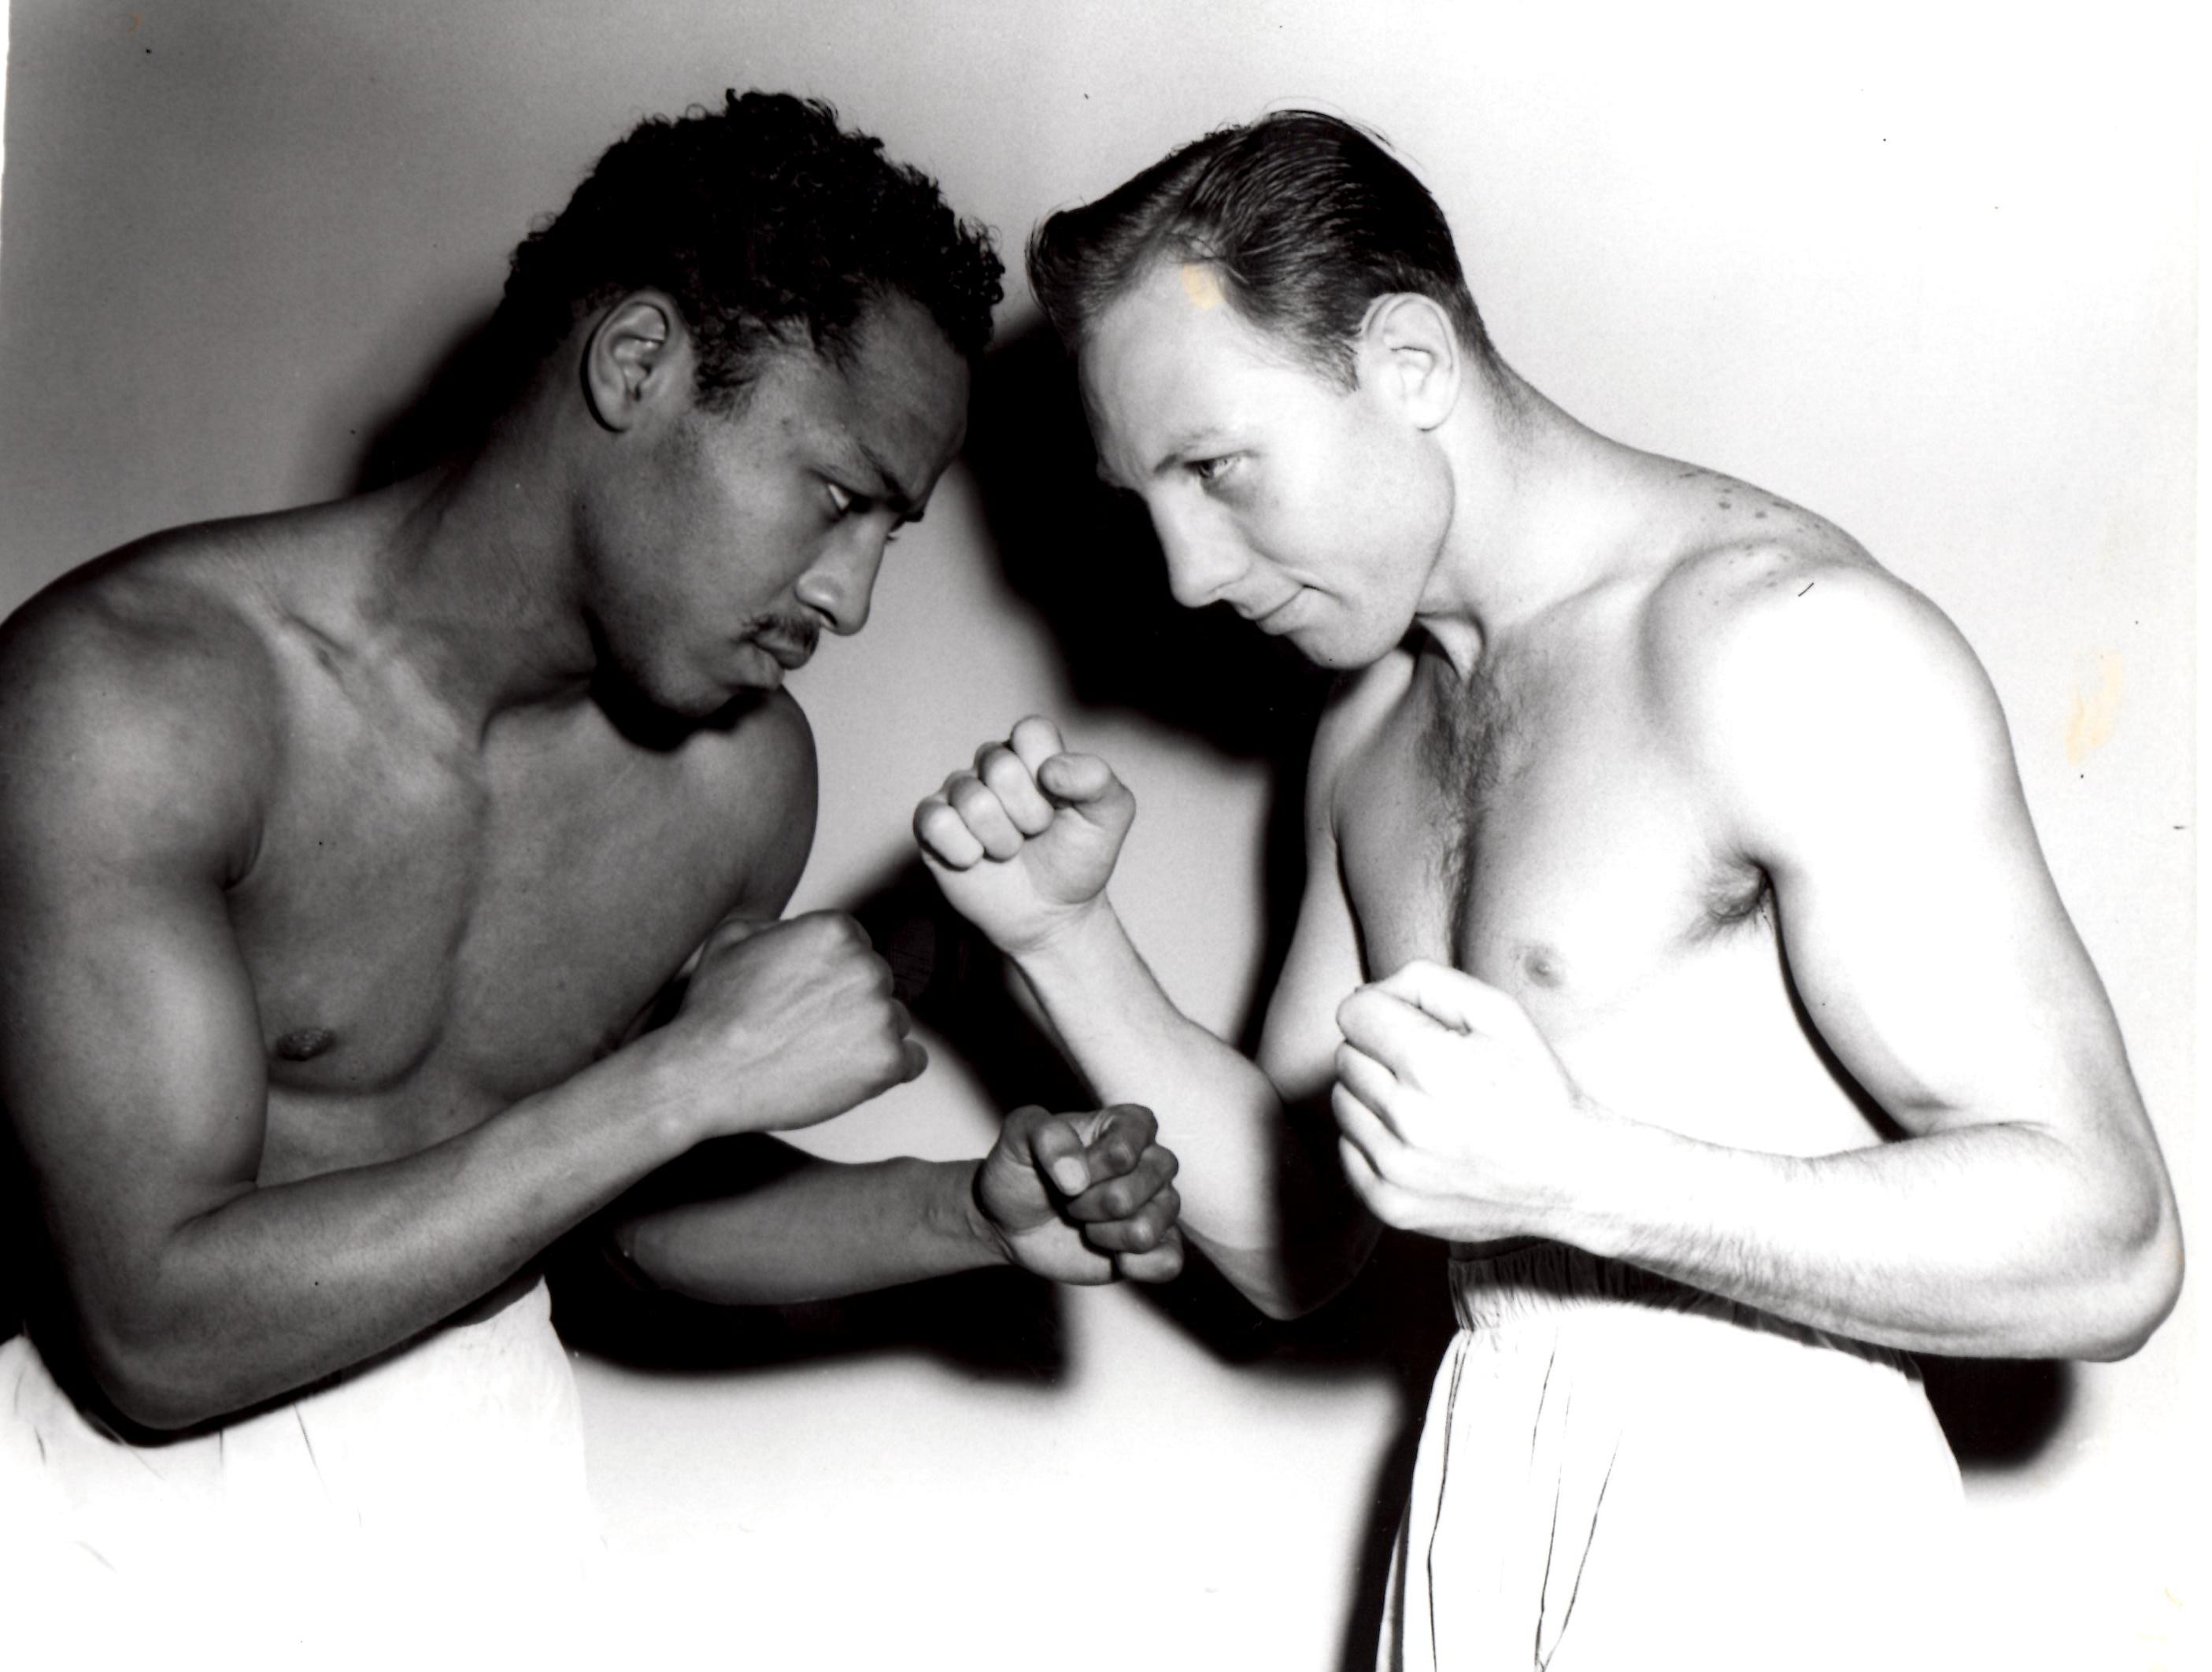 Johnny Bratton and Charley Fusari prior to their 1951 Welterweight Title fight